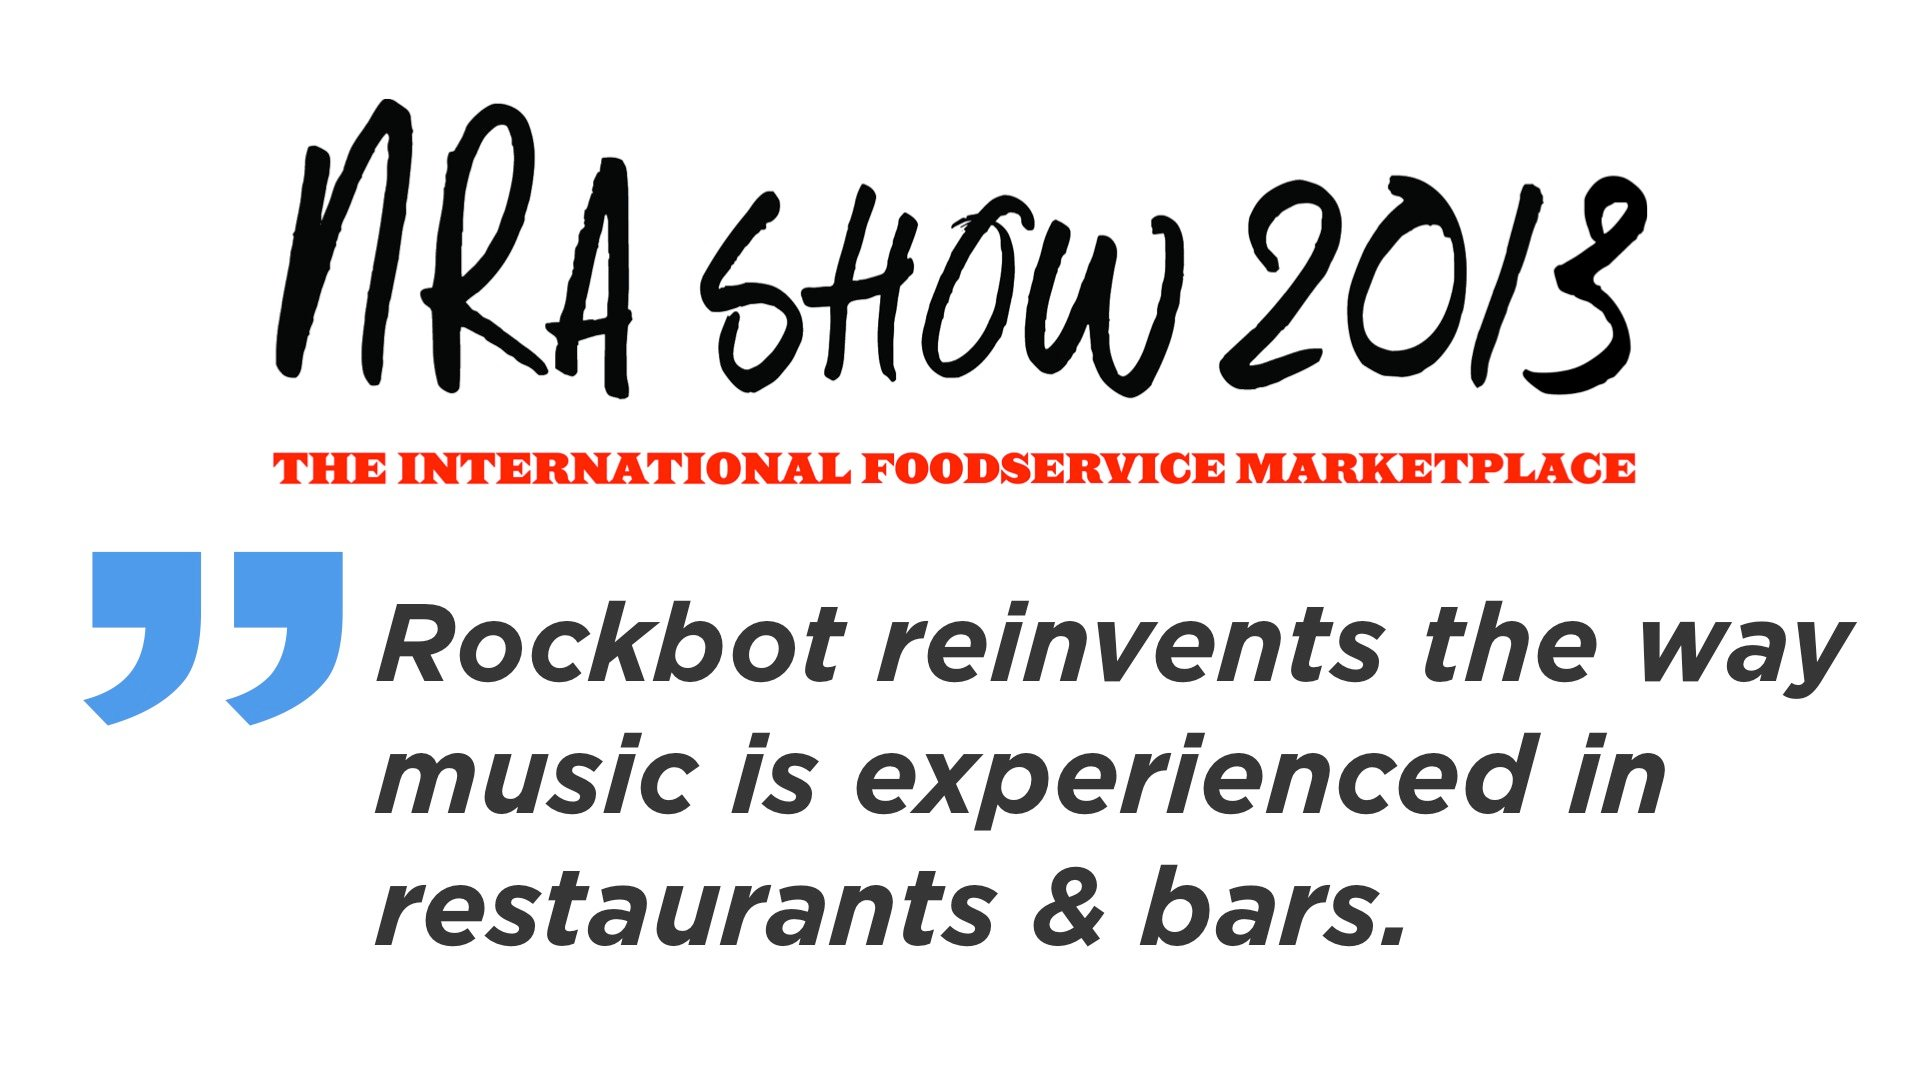 restaurant marketing trends nra show